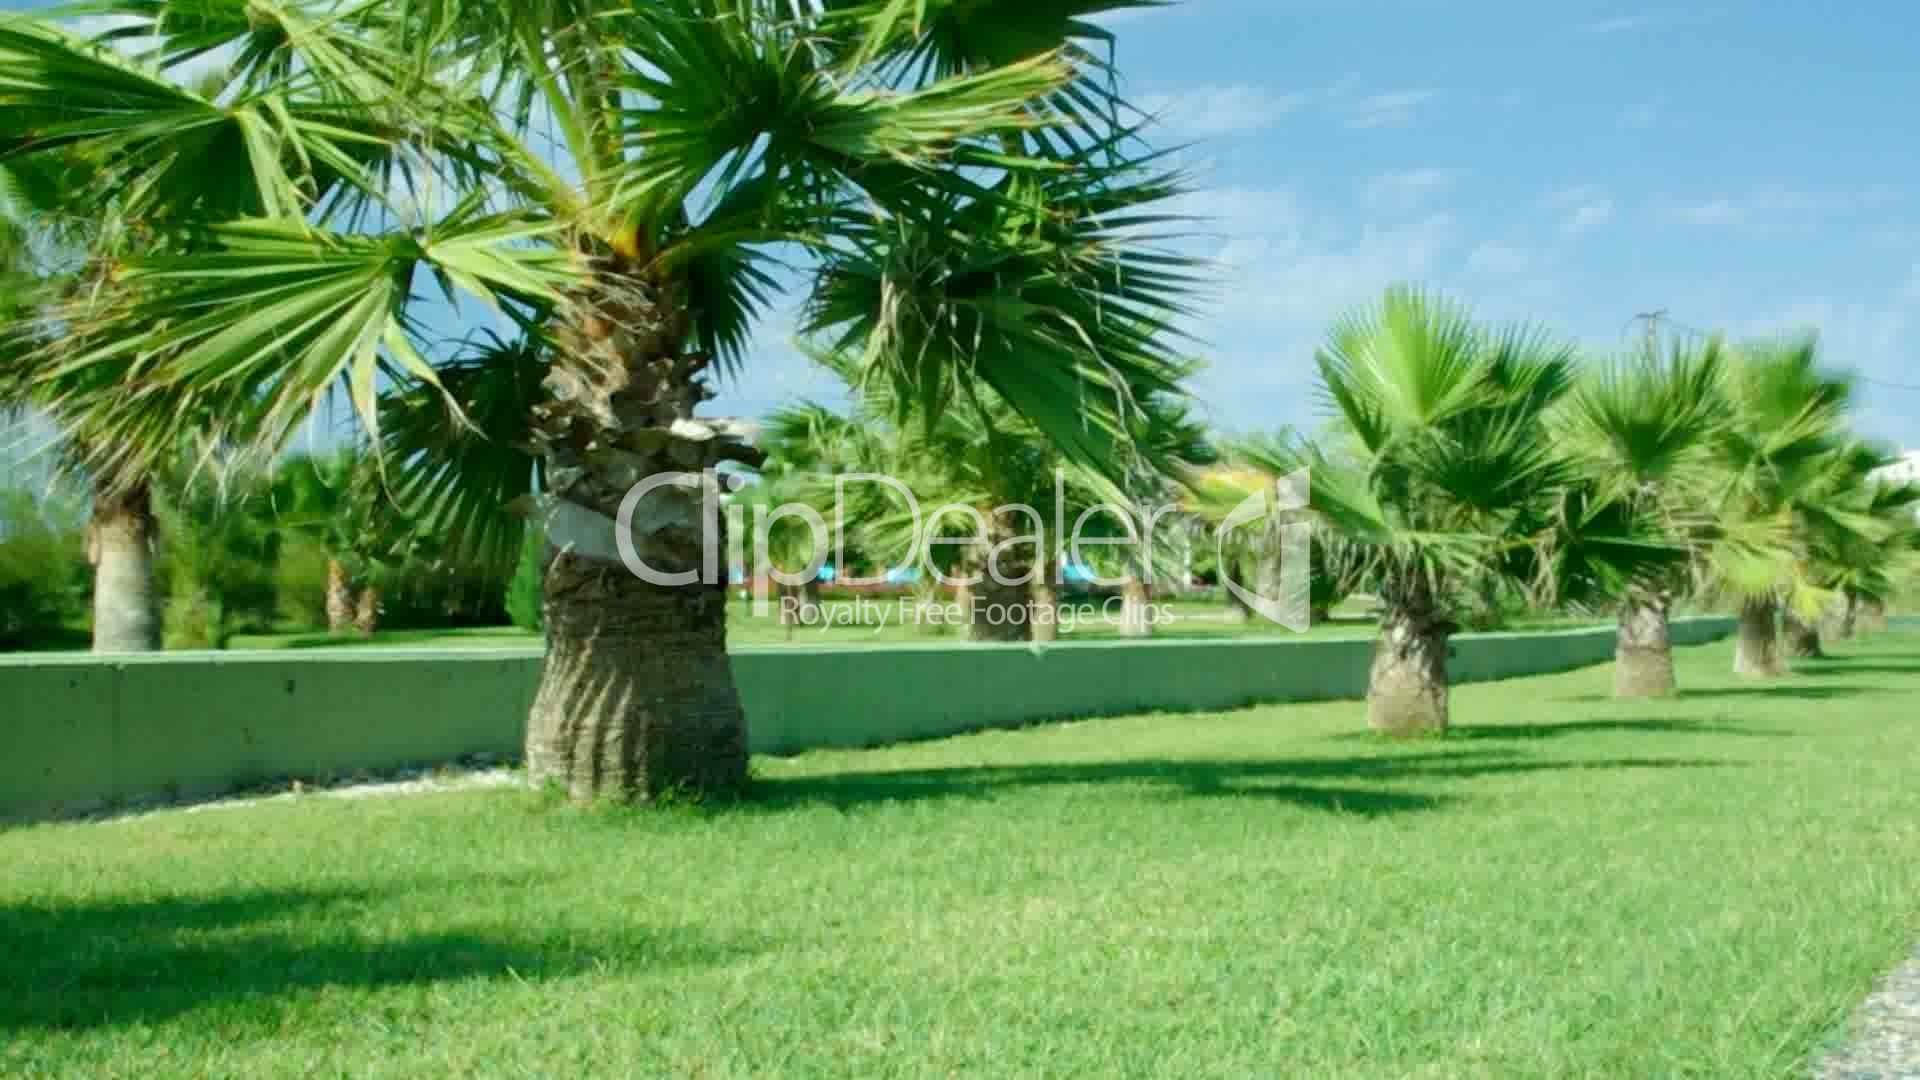 Beauty Palmtrees Royaltyfree Video And Stock Footage. Laser Hair Removal Boston Ma. Contoso Administrator Password. Colleges Near Savannah Ga Integra Skin Graft. Business Card Design Print How To Start Ira. Online Degree In Business Management. San Diego Medical Malpractice. Virginia Birth Injury Fund Perkins Heavy Haul. University Of Washington Admissions